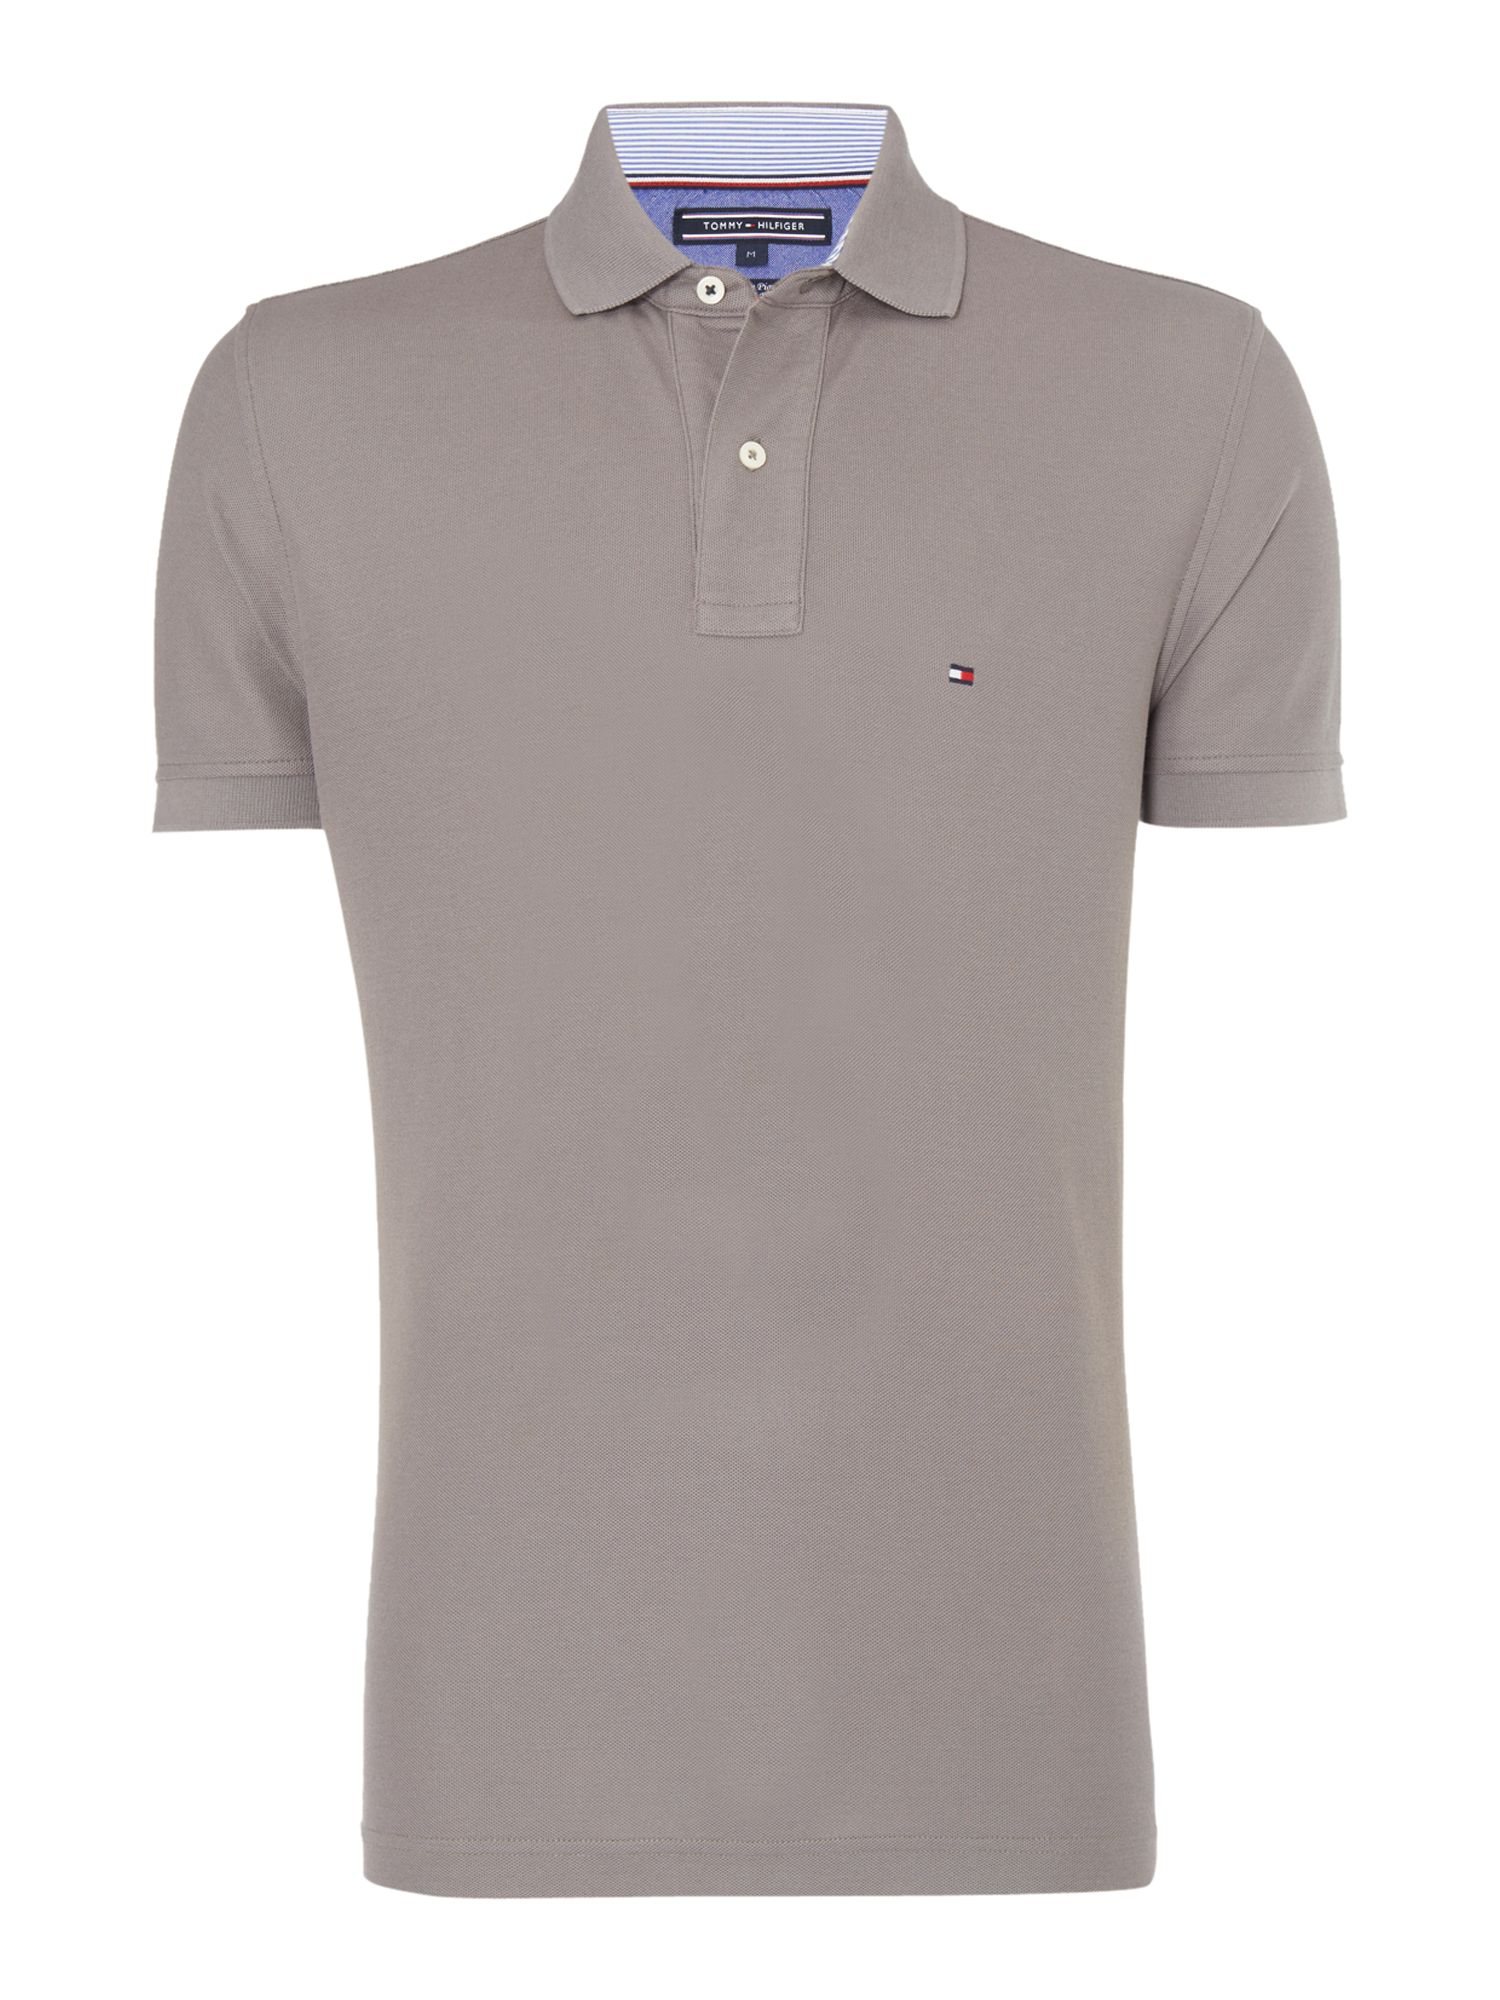 Men's Tommy Hilfiger Regular fit performance polo top, Dark Grey